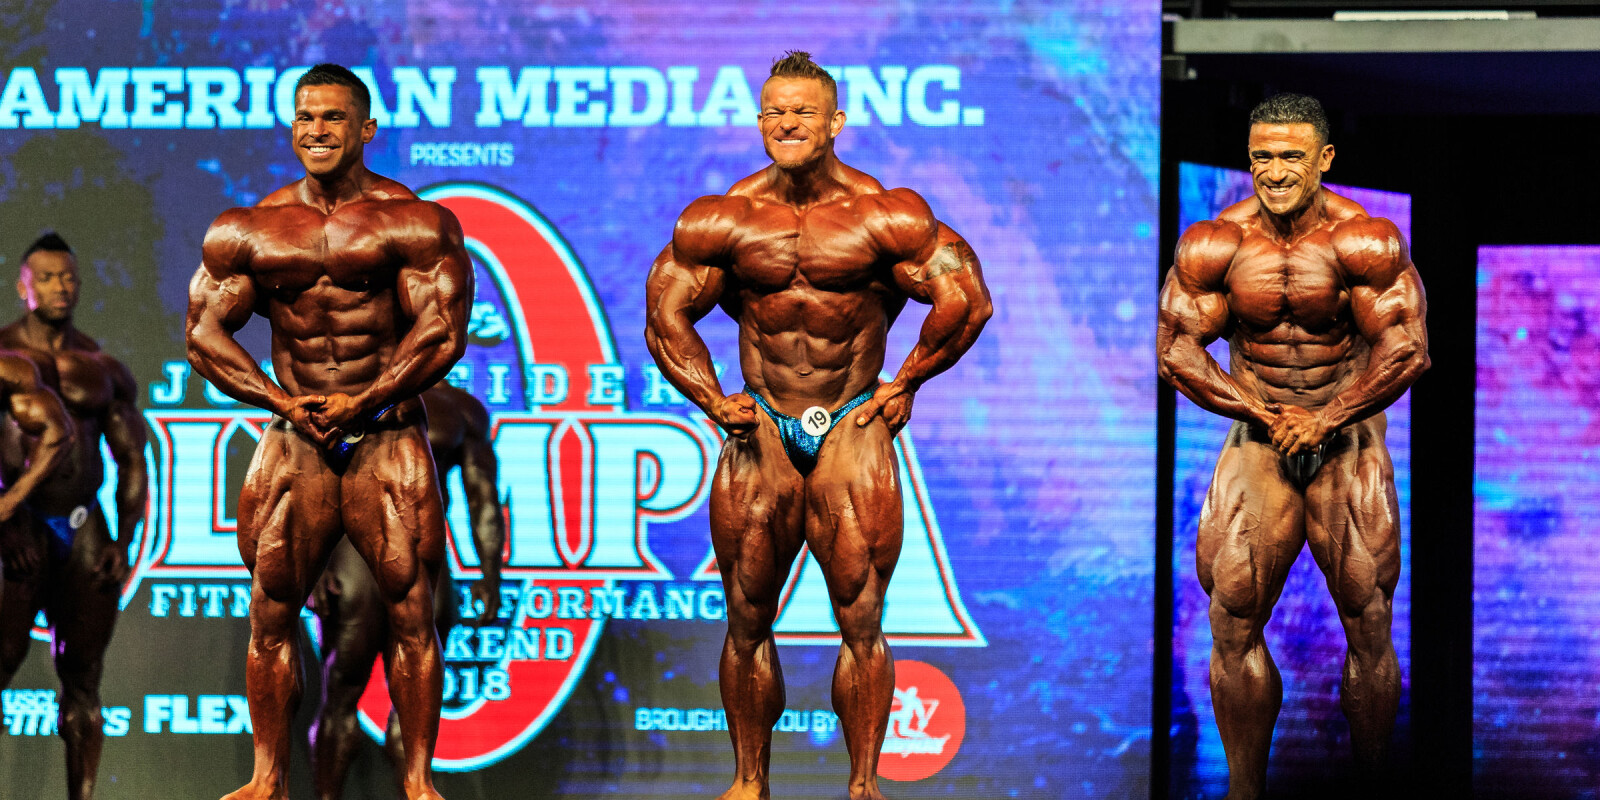 Images from the 2018 Mr. Olympia in Las Vegas